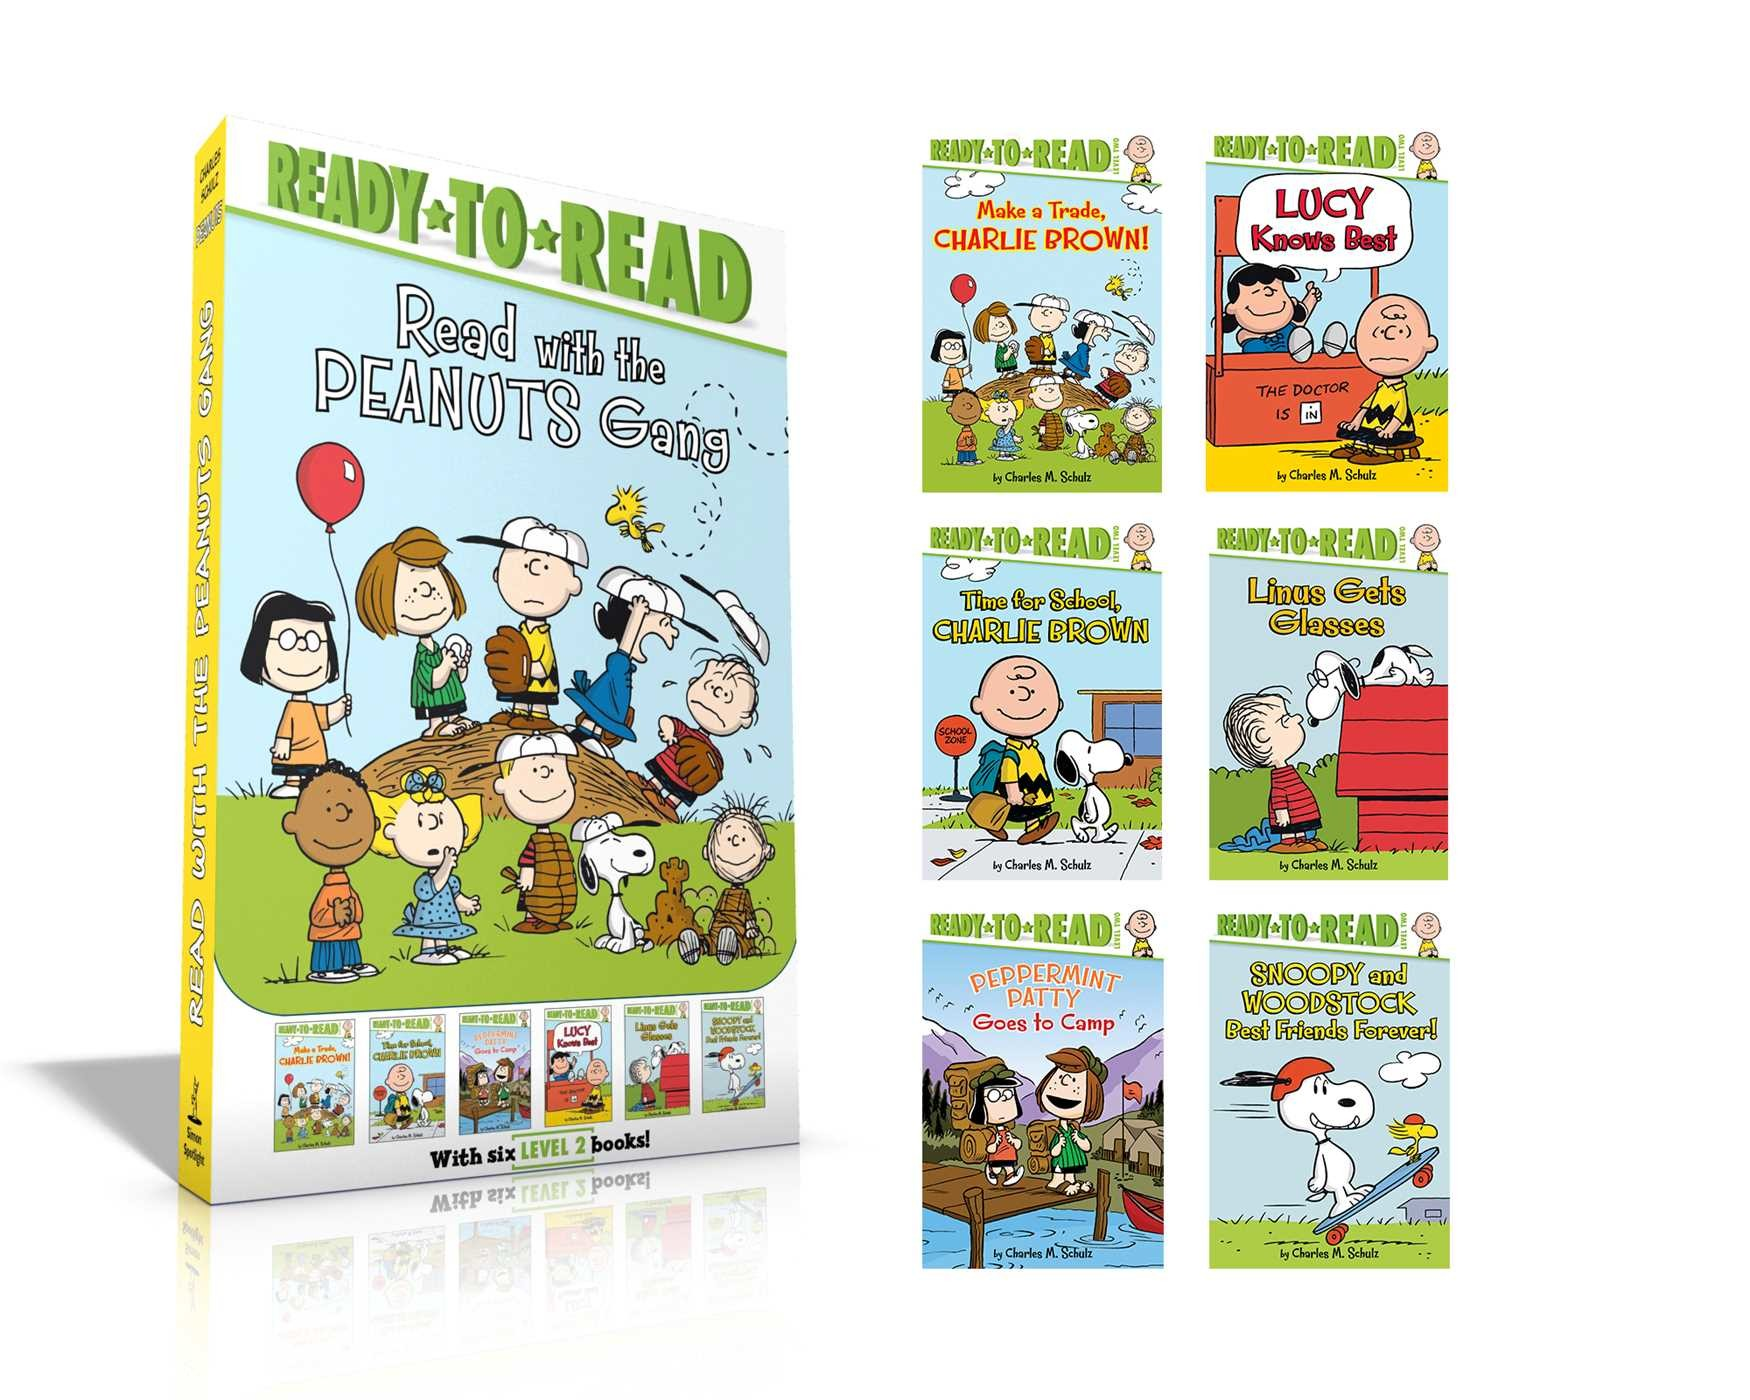 Read with the peanuts gang 9781534409682.in01